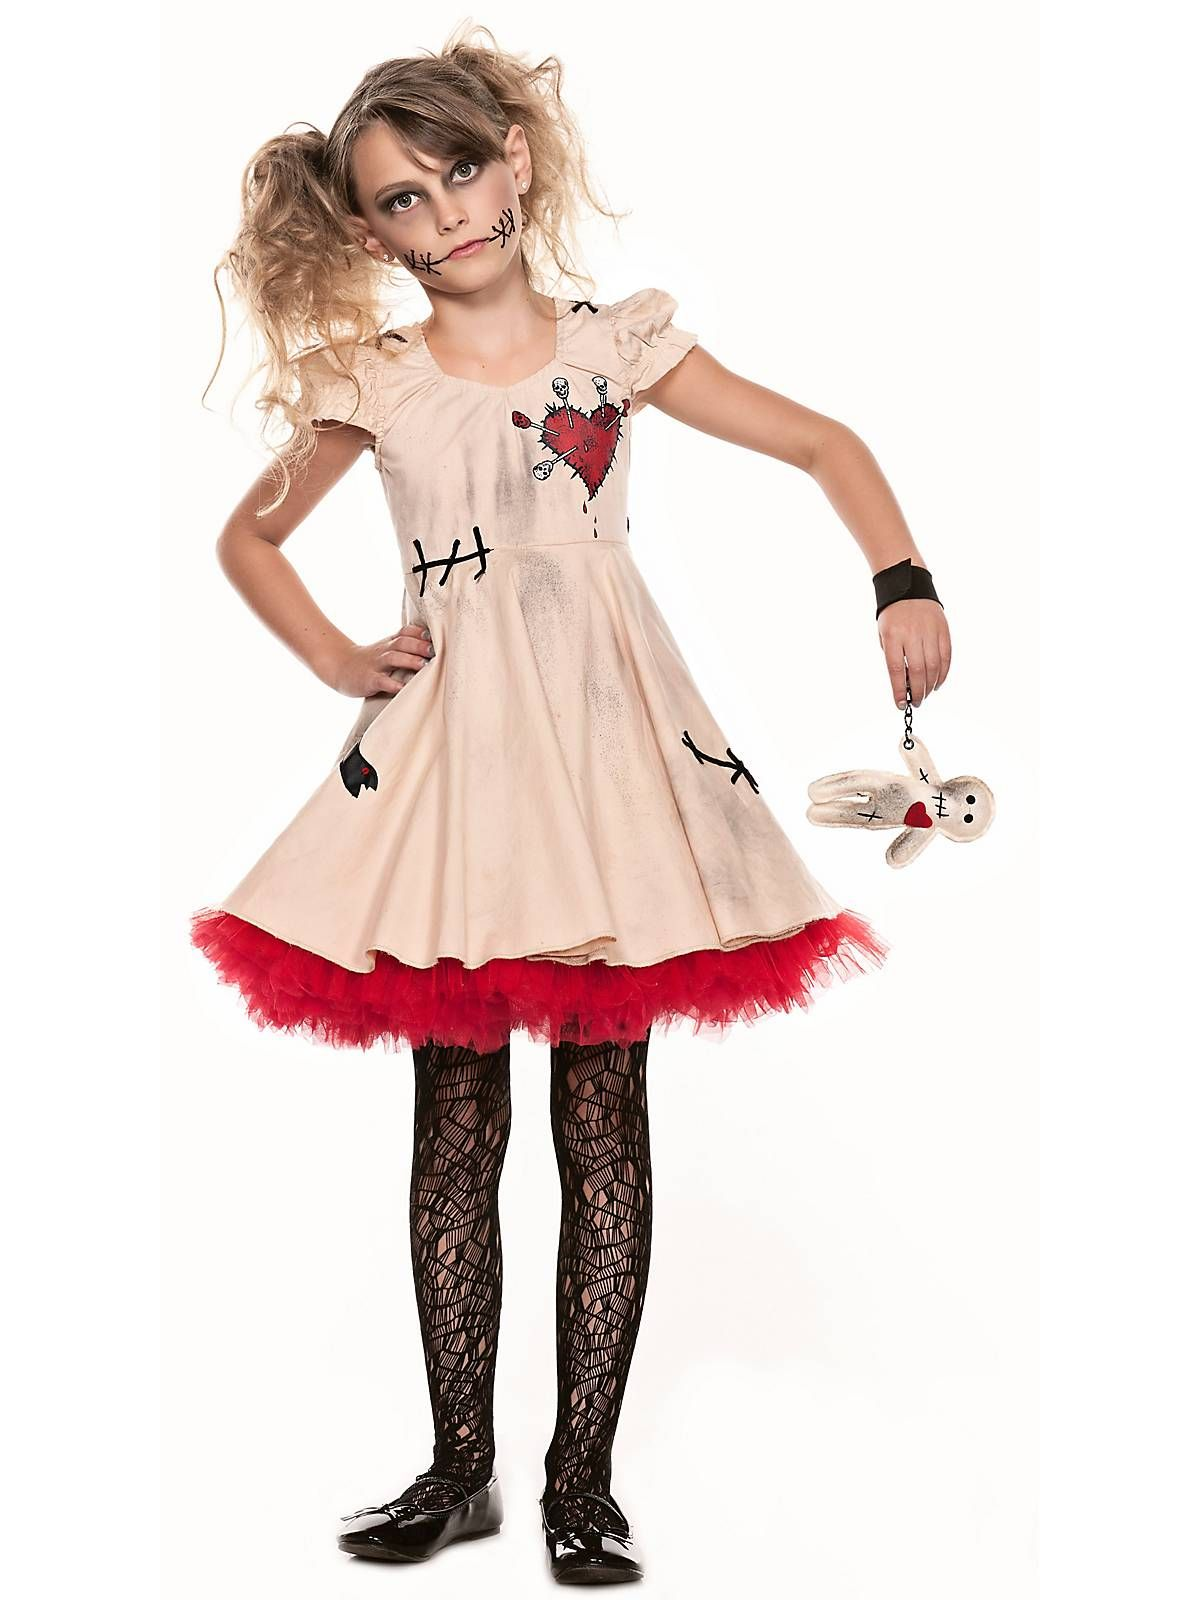 Kids Zombie School Girl Costume | Zombie school girl, Zombie ...